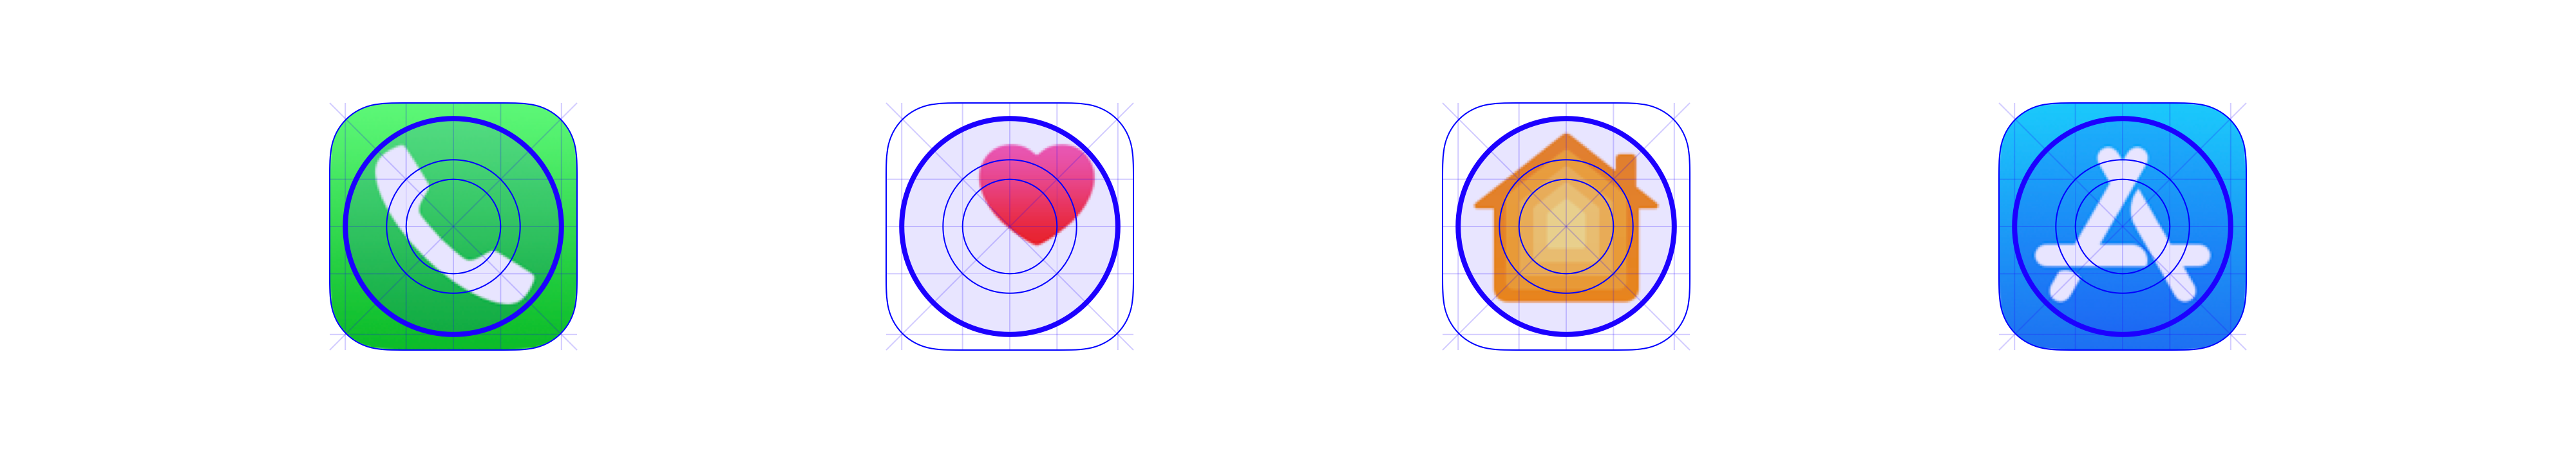 Non-circular iOS app icons don't strictly reference the grid